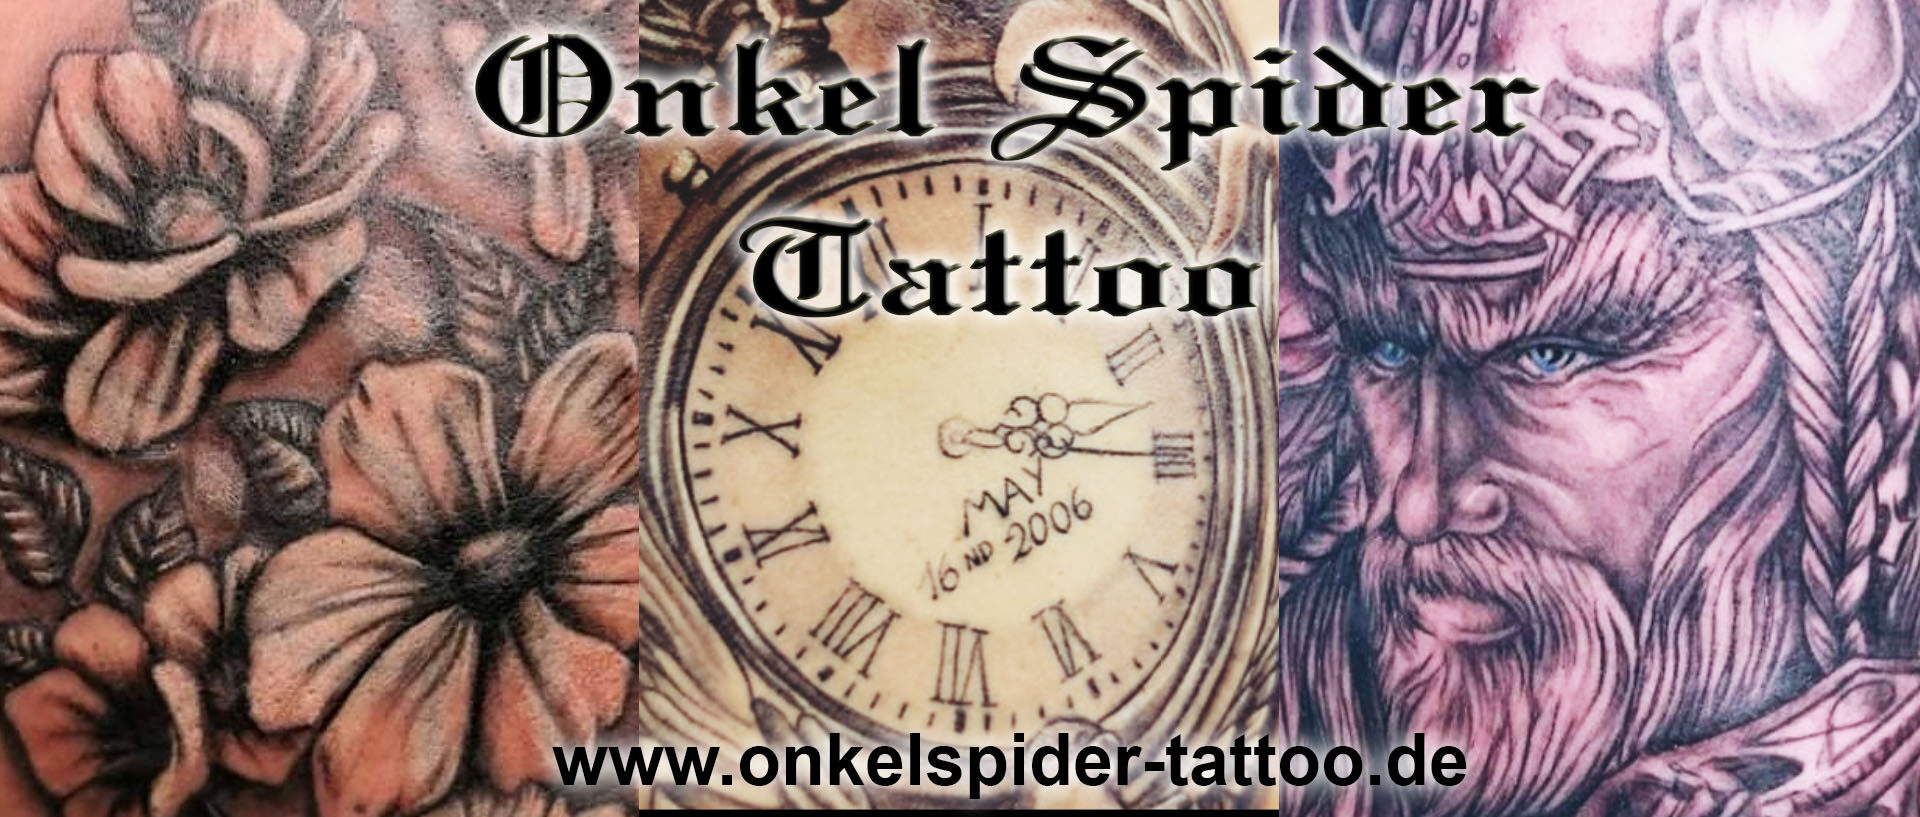 Onkel Spider Tattoo